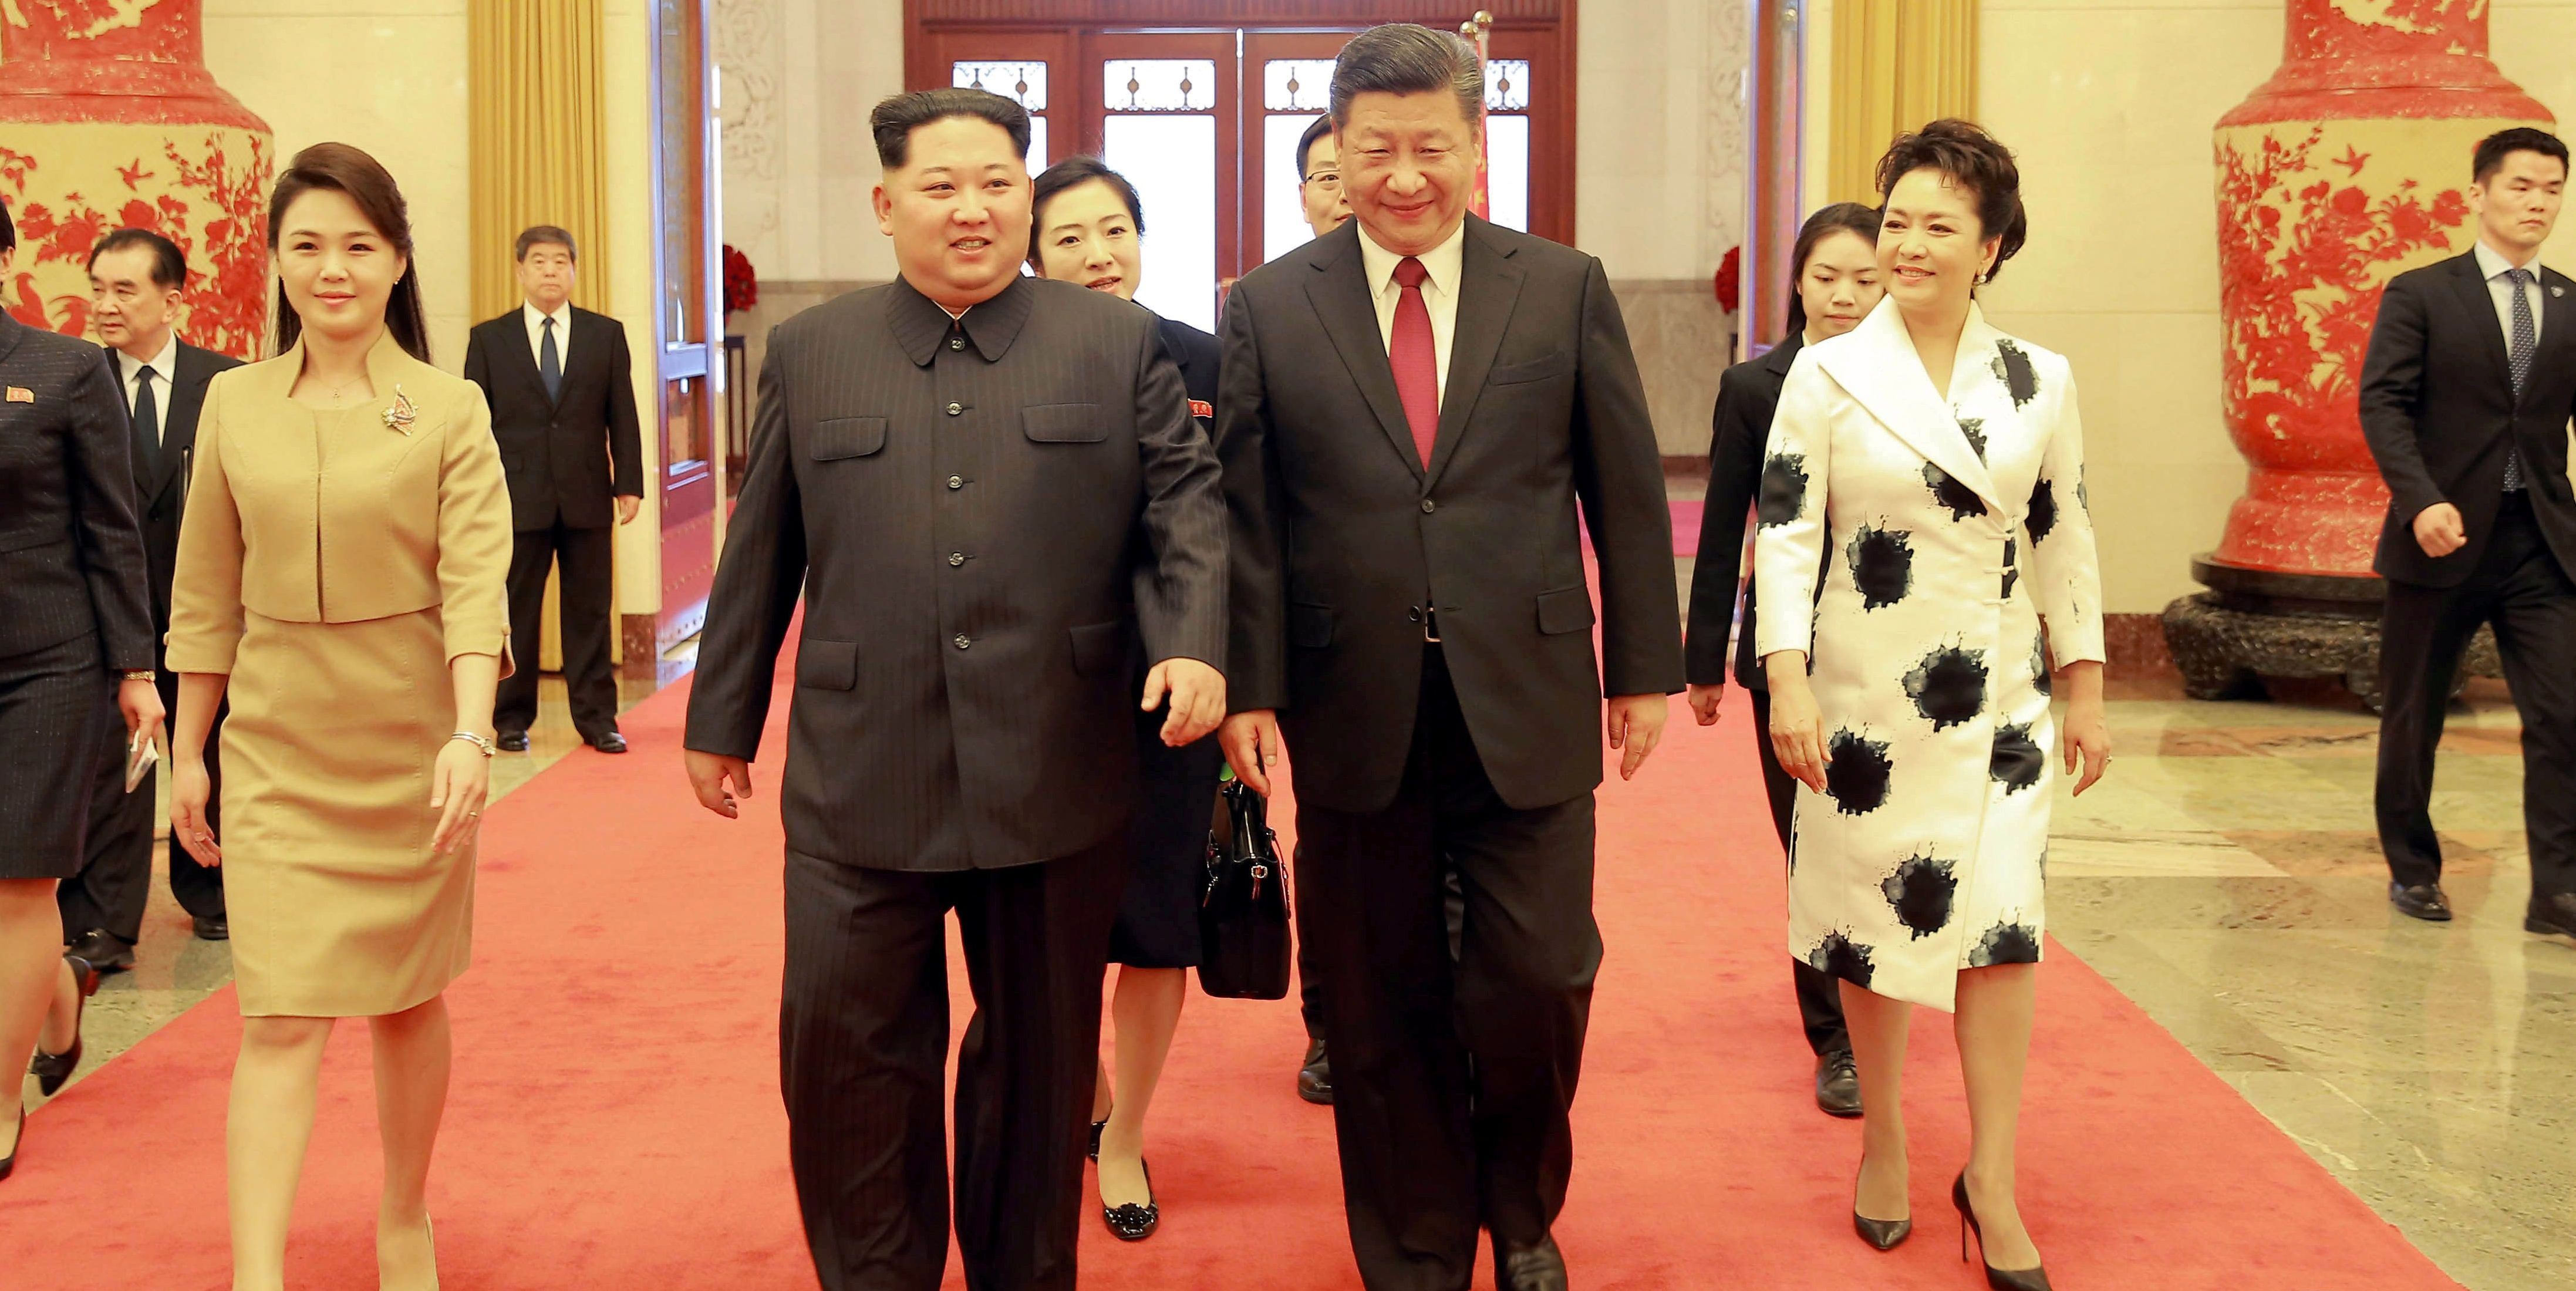 North Korean leader Kim Jong Un and wife Ri Sol Ju, and Chinese President Xi Jinping and wife Peng walk together